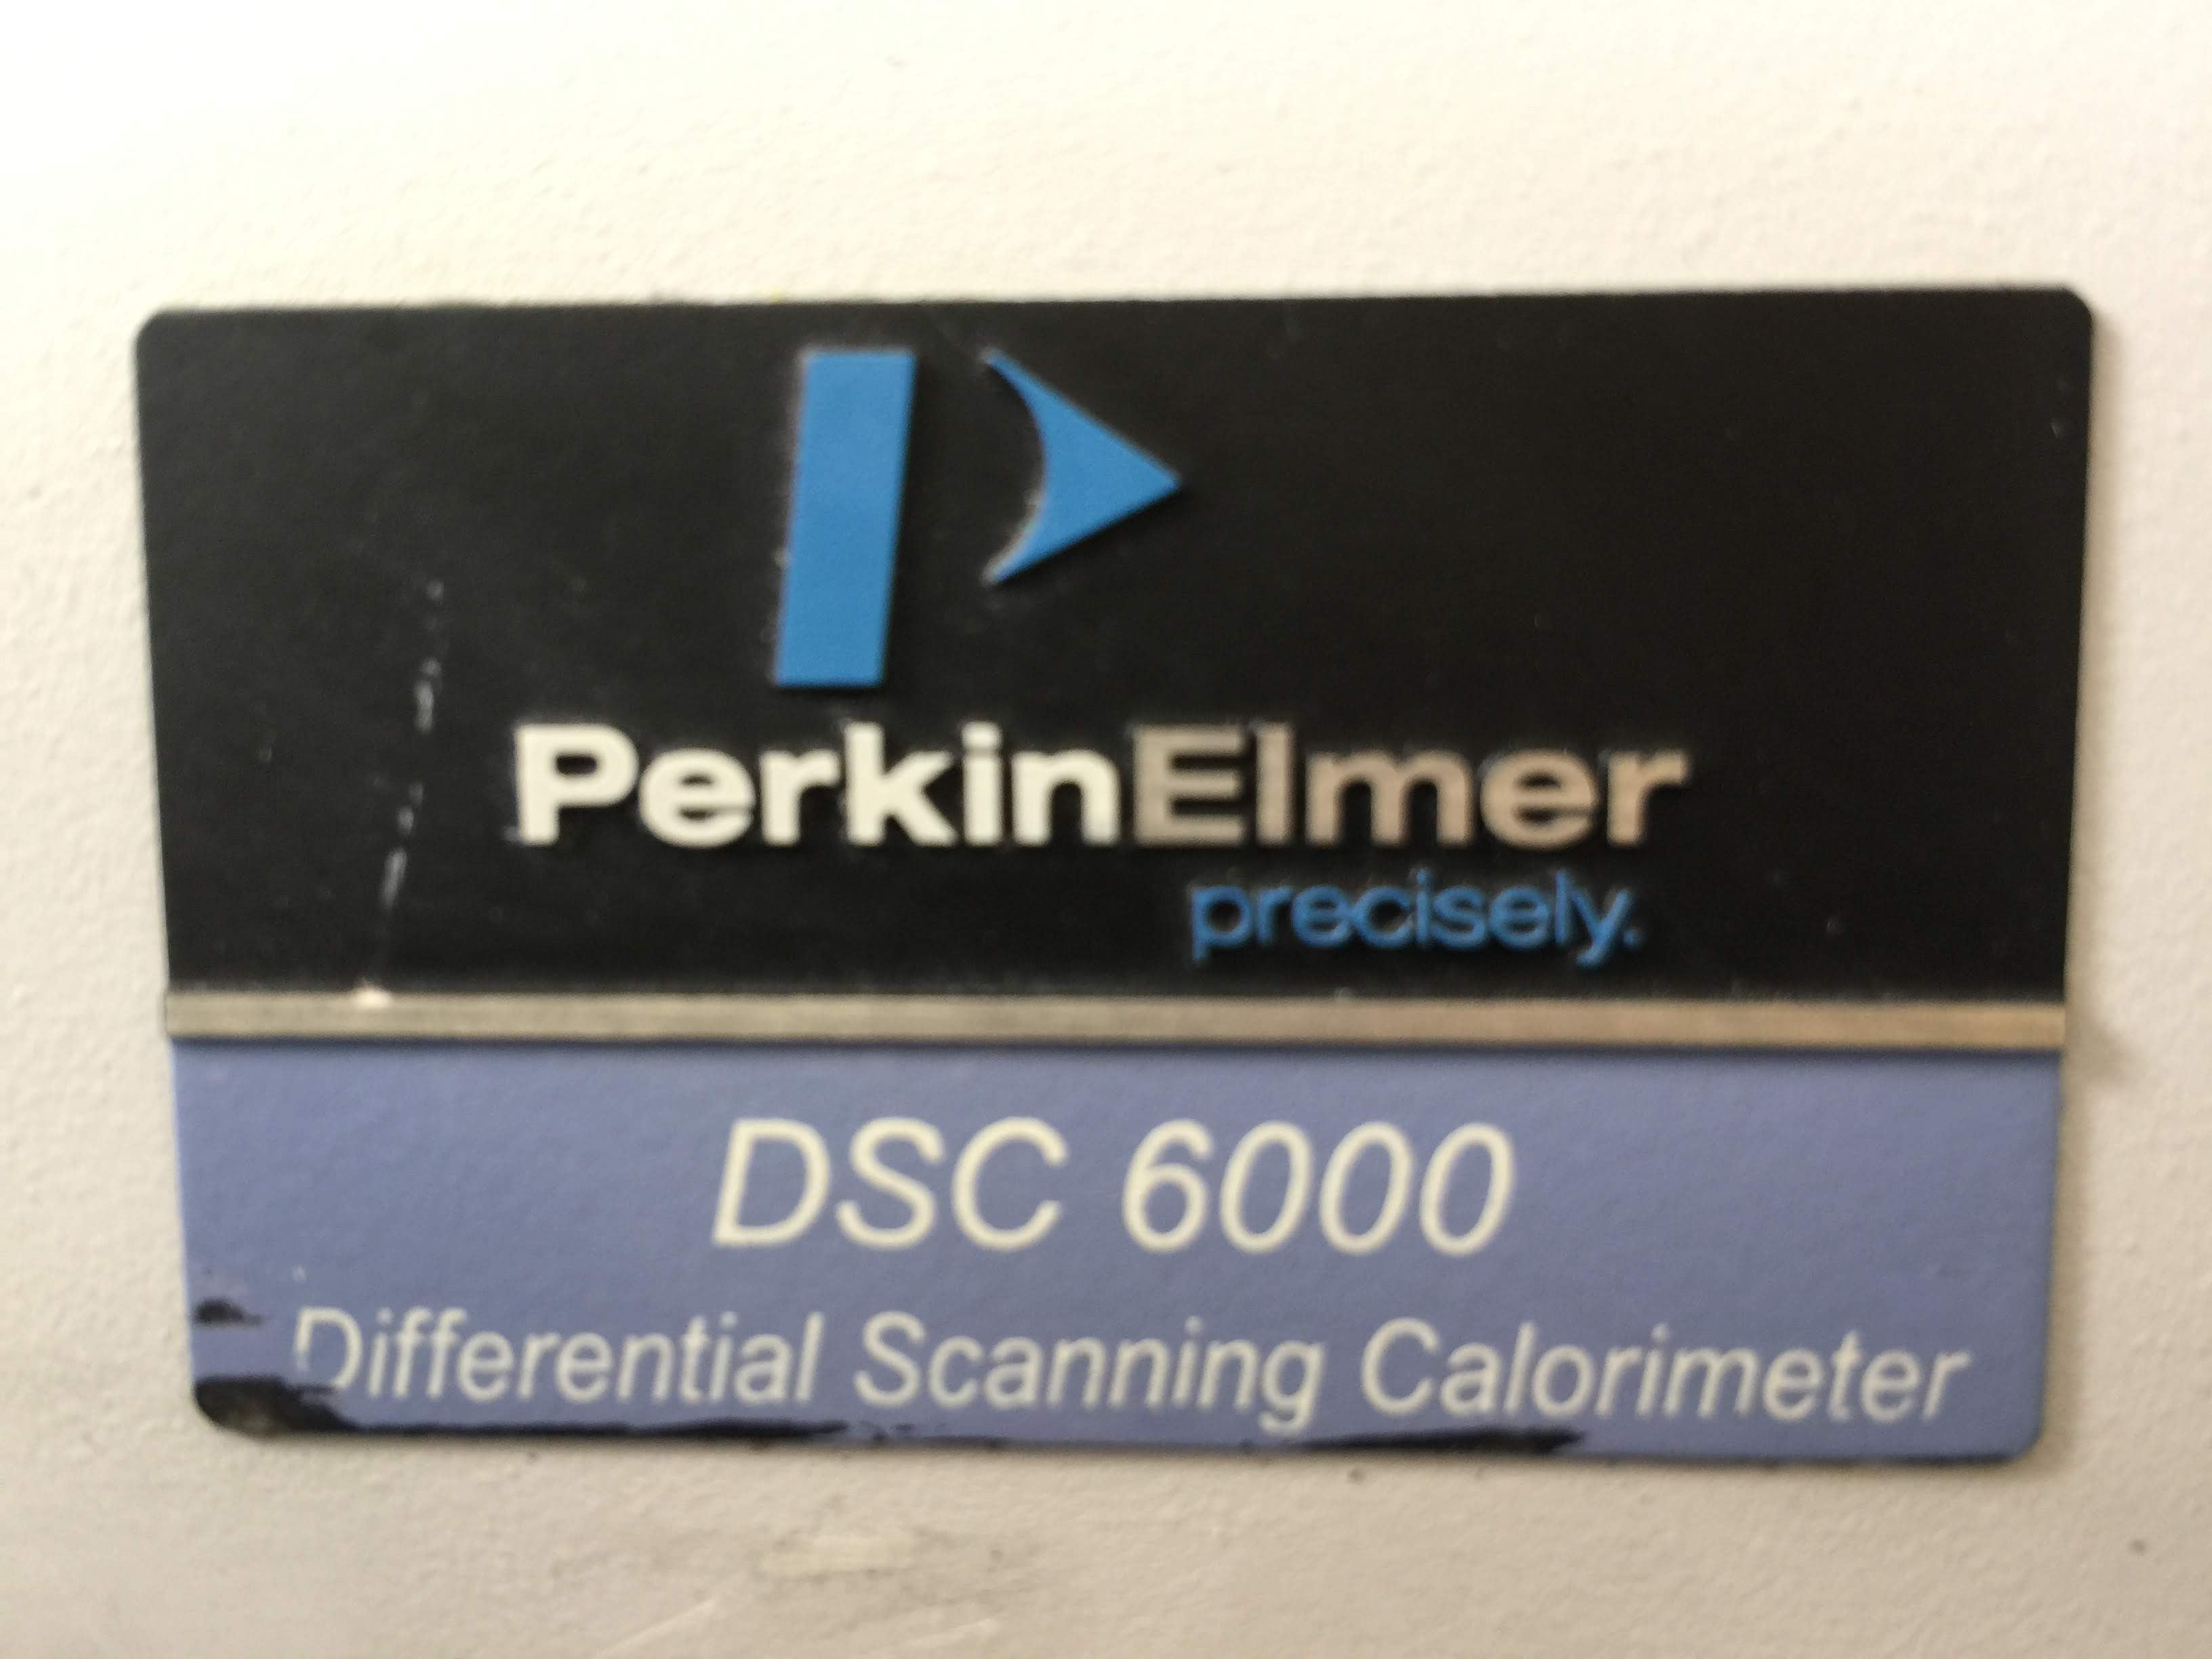 Perkin Elmer Precisely DSC 6000